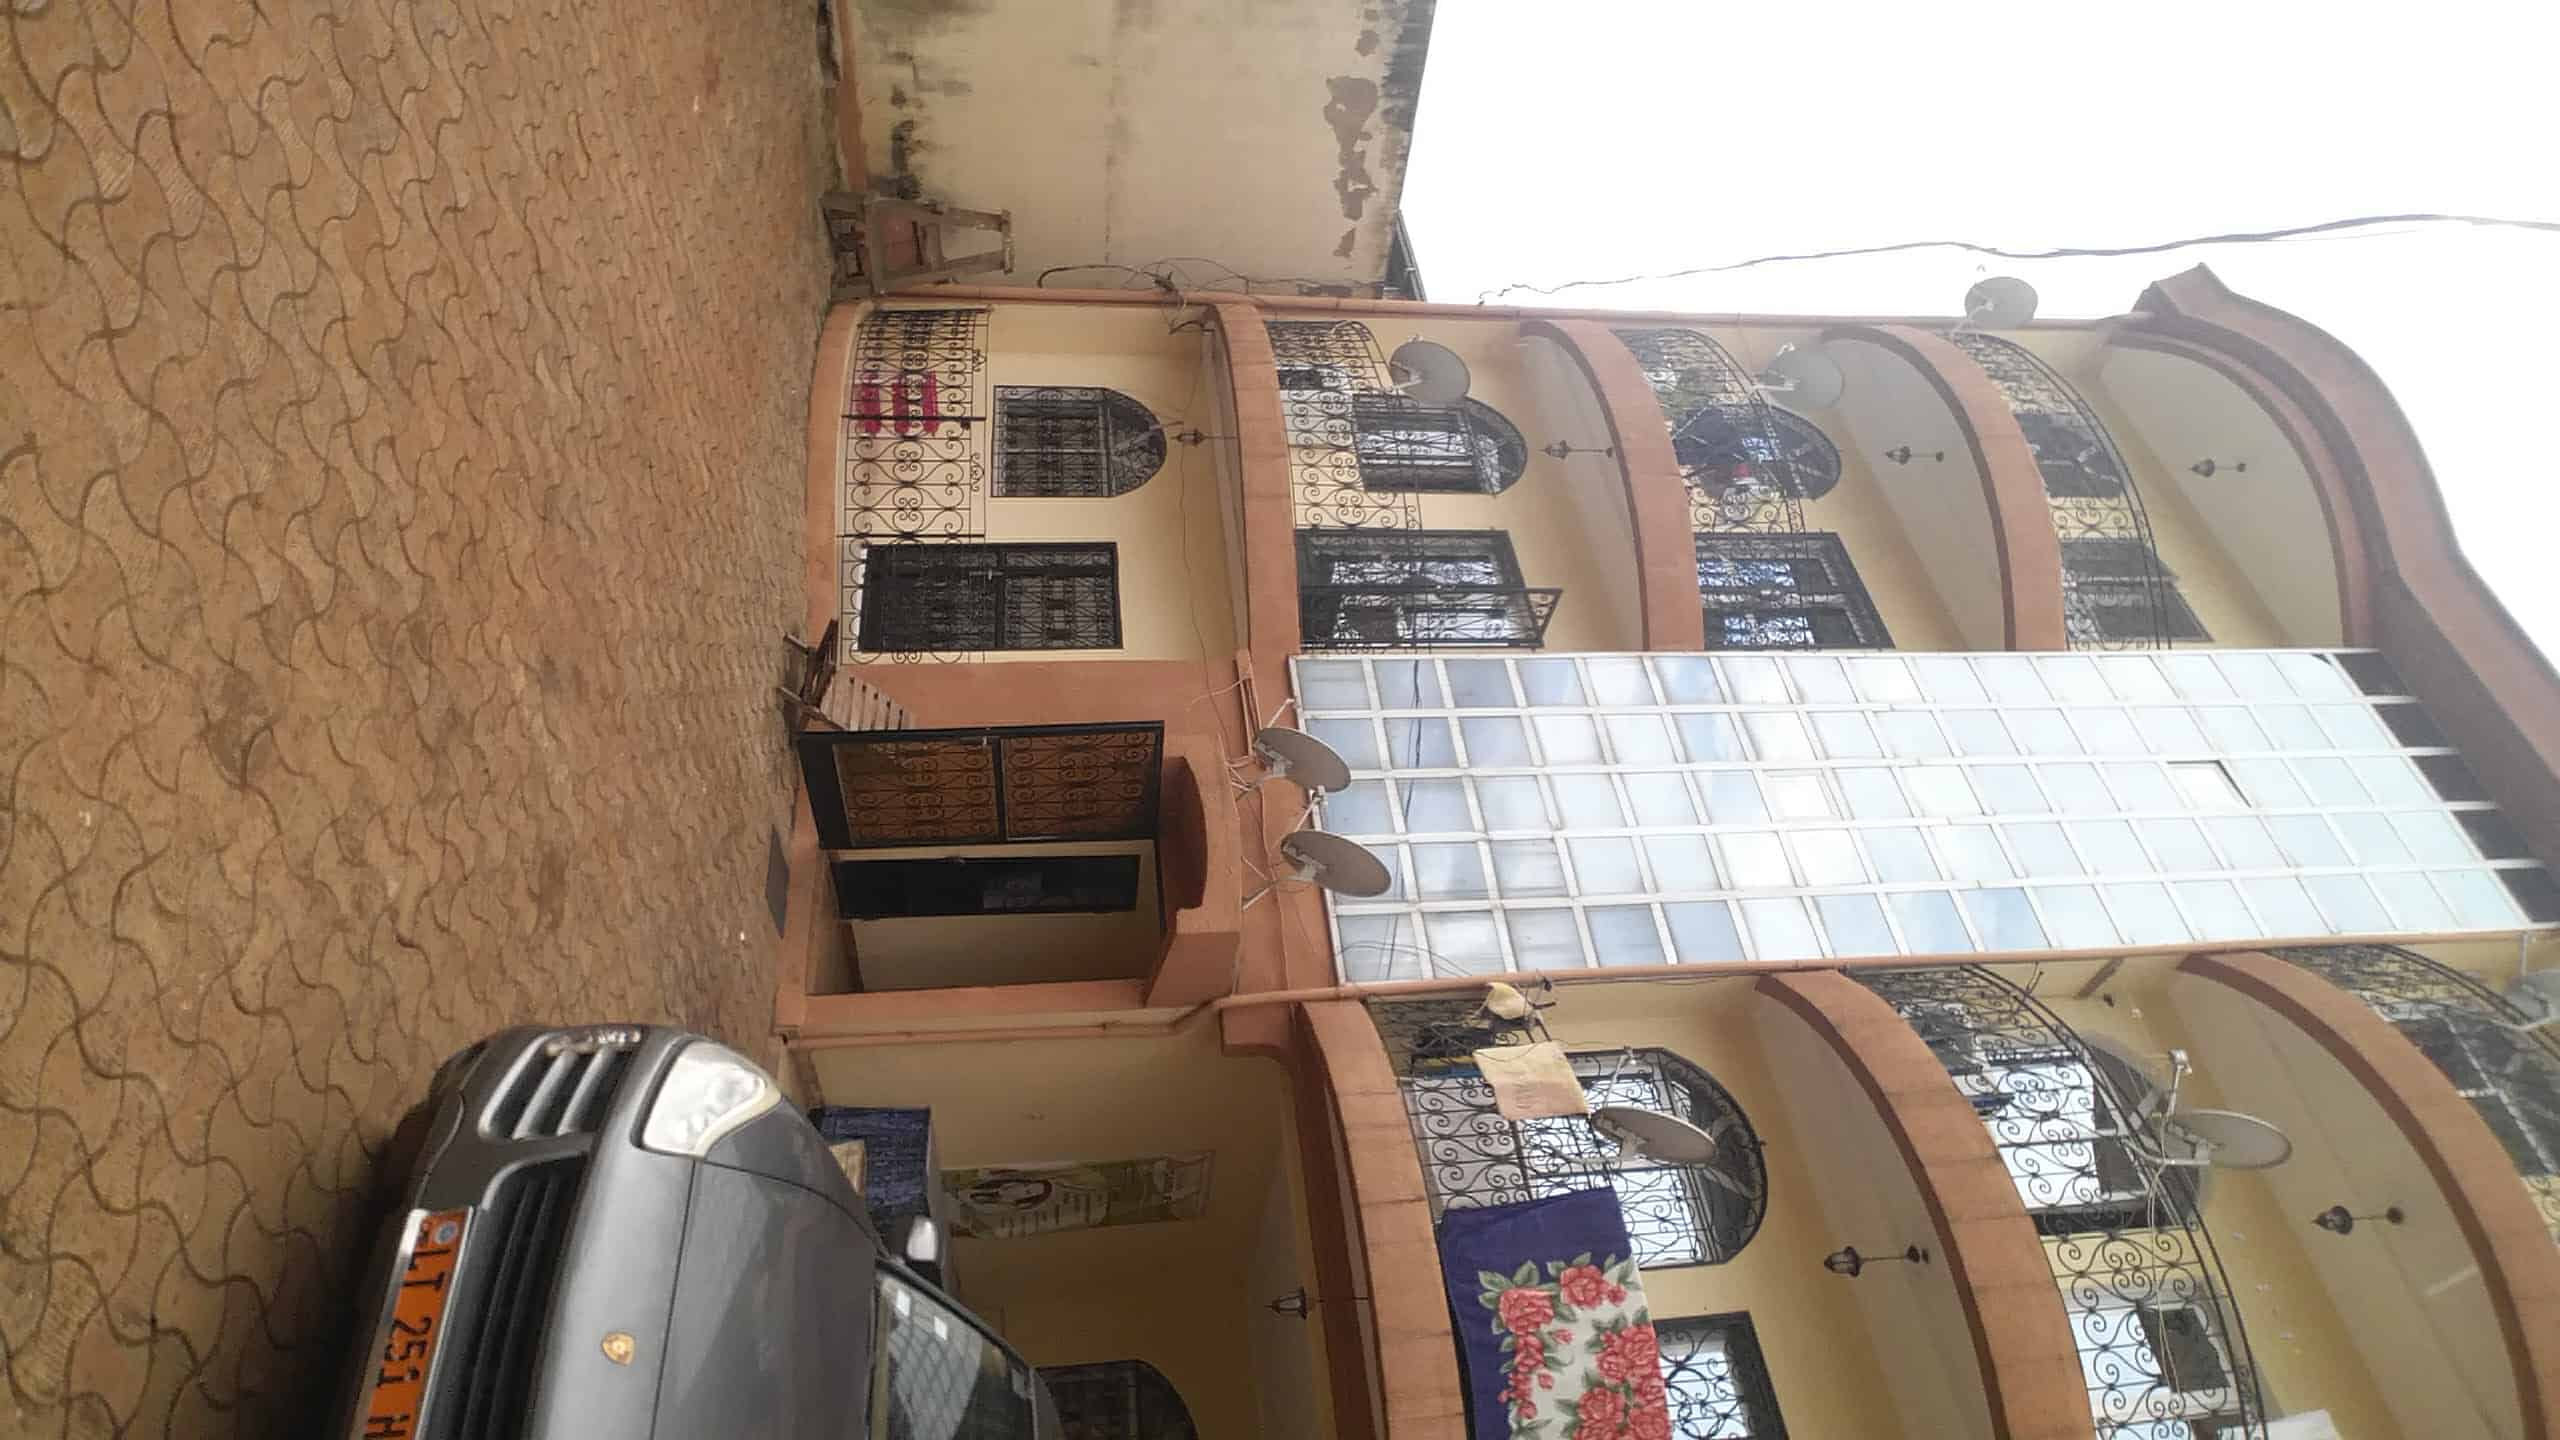 Apartment to rent - Yaoundé, Mfandena, Omnisport - 1 living room(s), 2 bedroom(s), 3 bathroom(s) - 200 000 FCFA / month